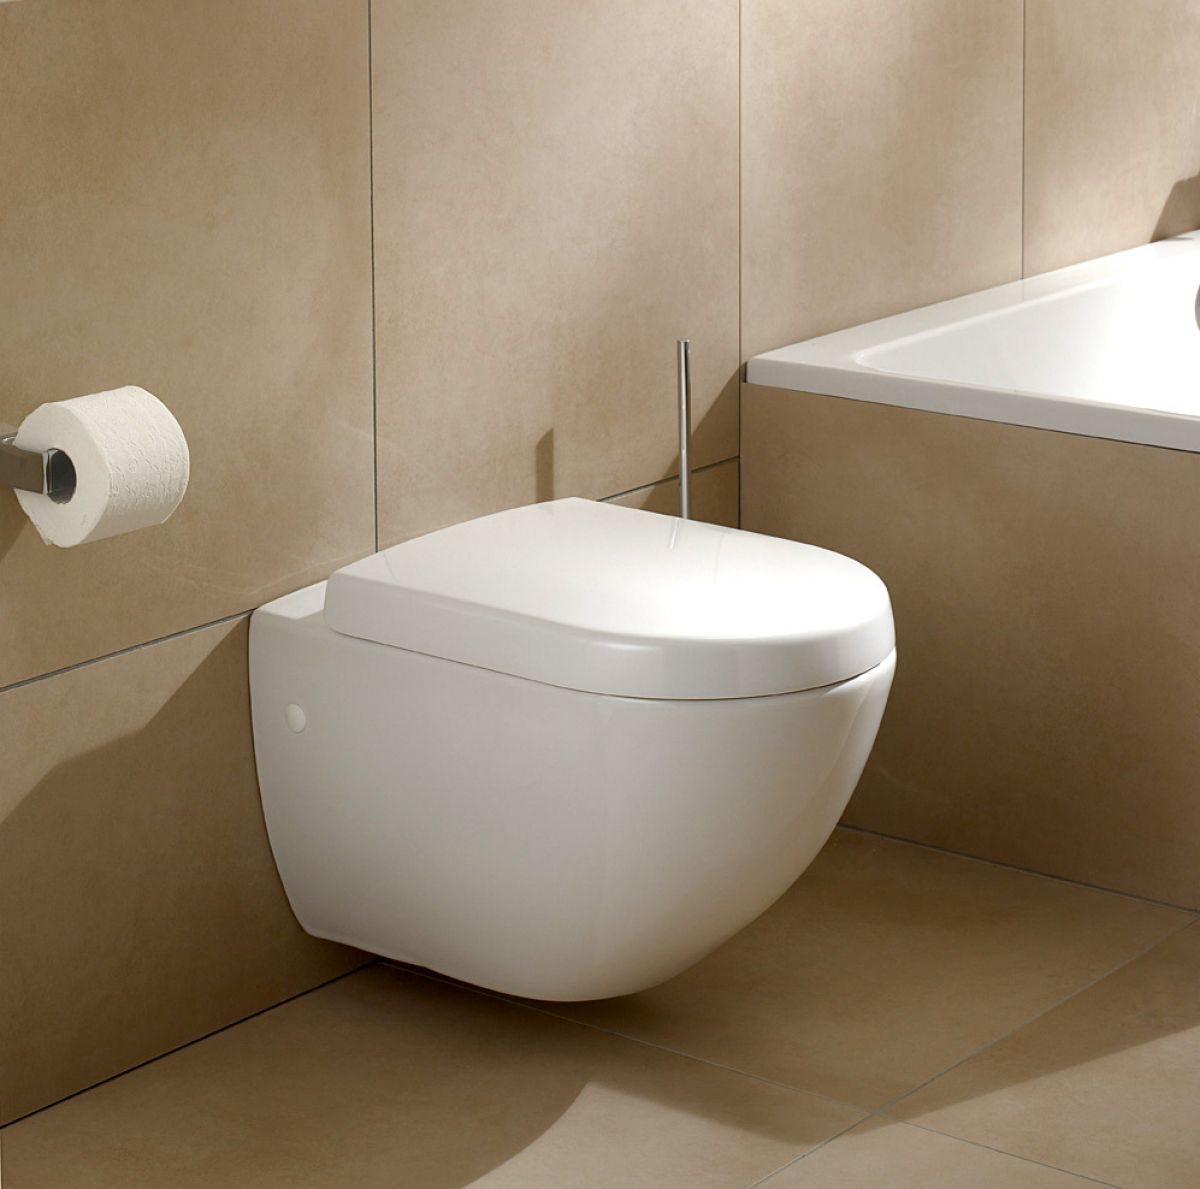 Villeroy and boch subway compact wall hung toilet uk - Villeroy y bosch ...